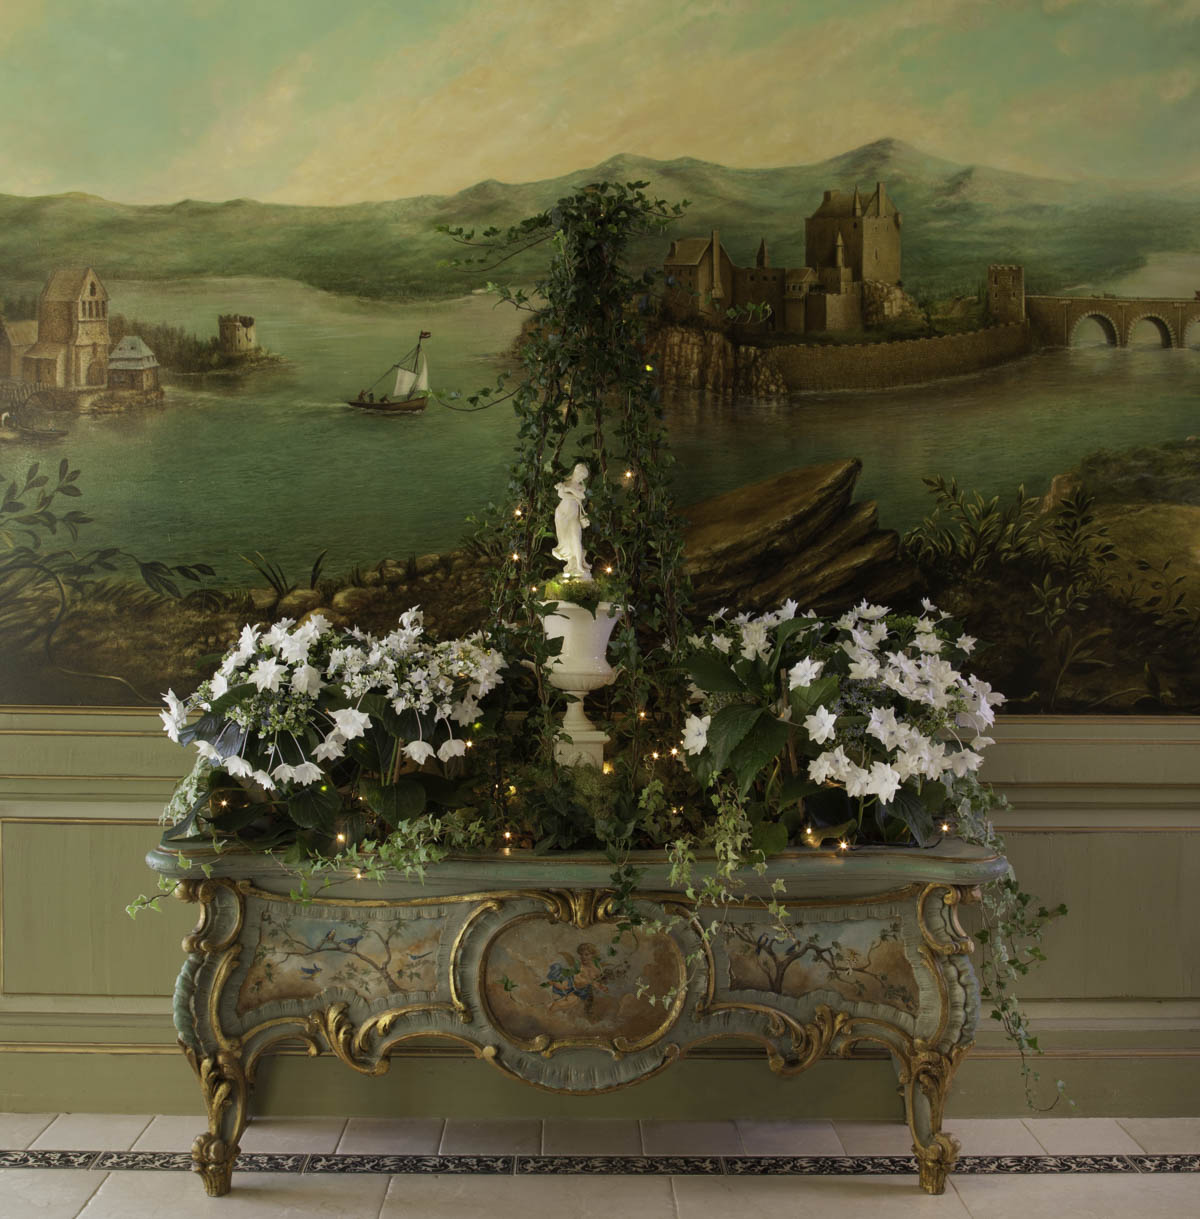 Statue and Floral Holiday Design by Jennifer Chapman